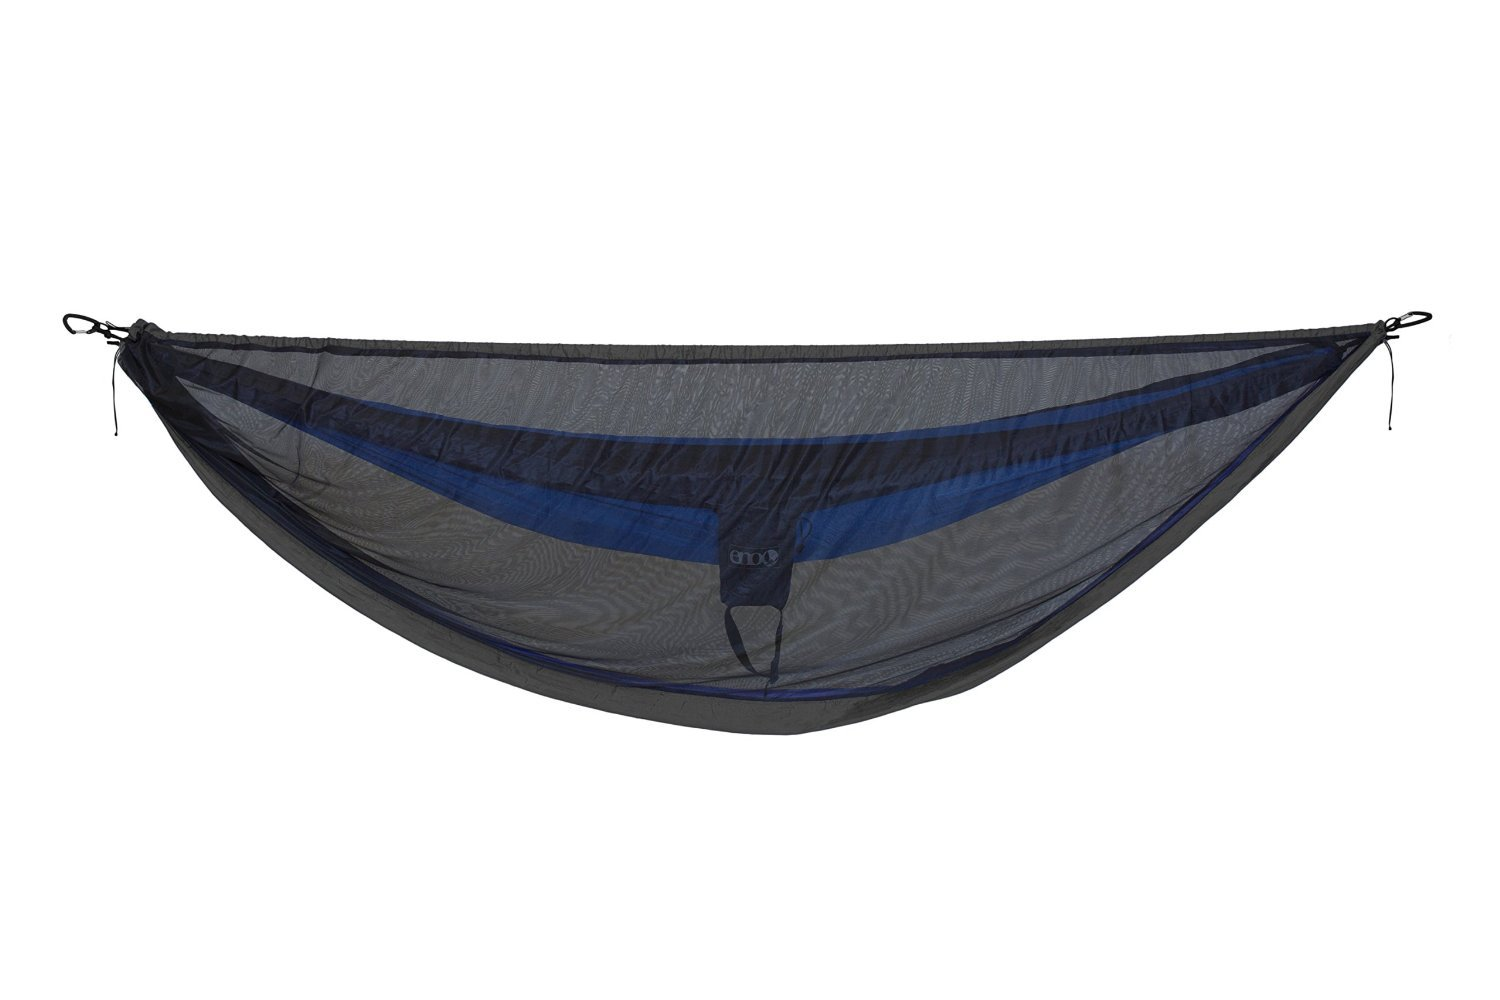 emu patrofi hammock camping backpack eno reviews veloclub co tent